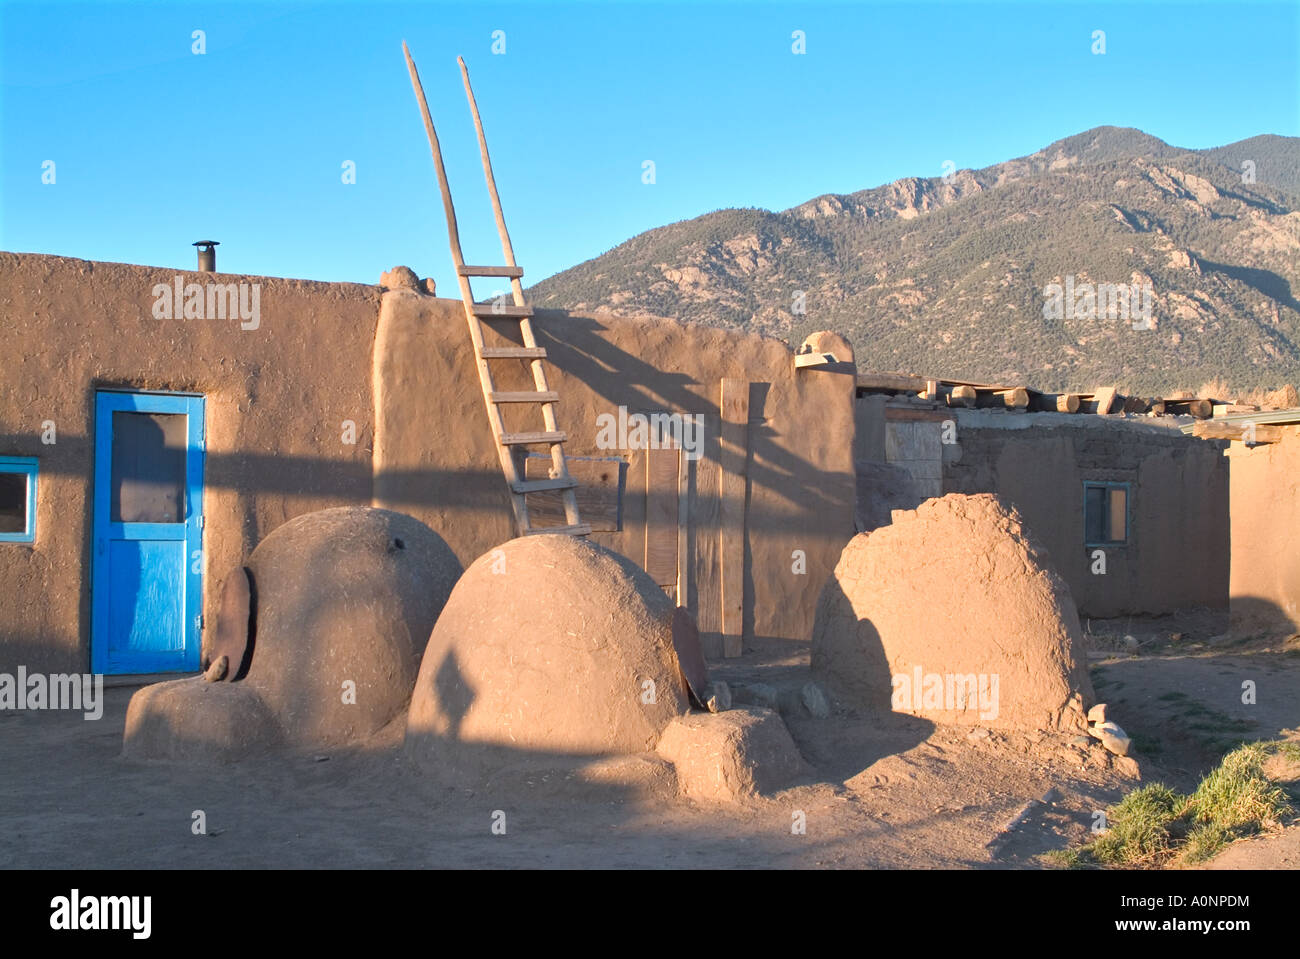 Native American Indian Homes And Residences In Taos Pueblo New